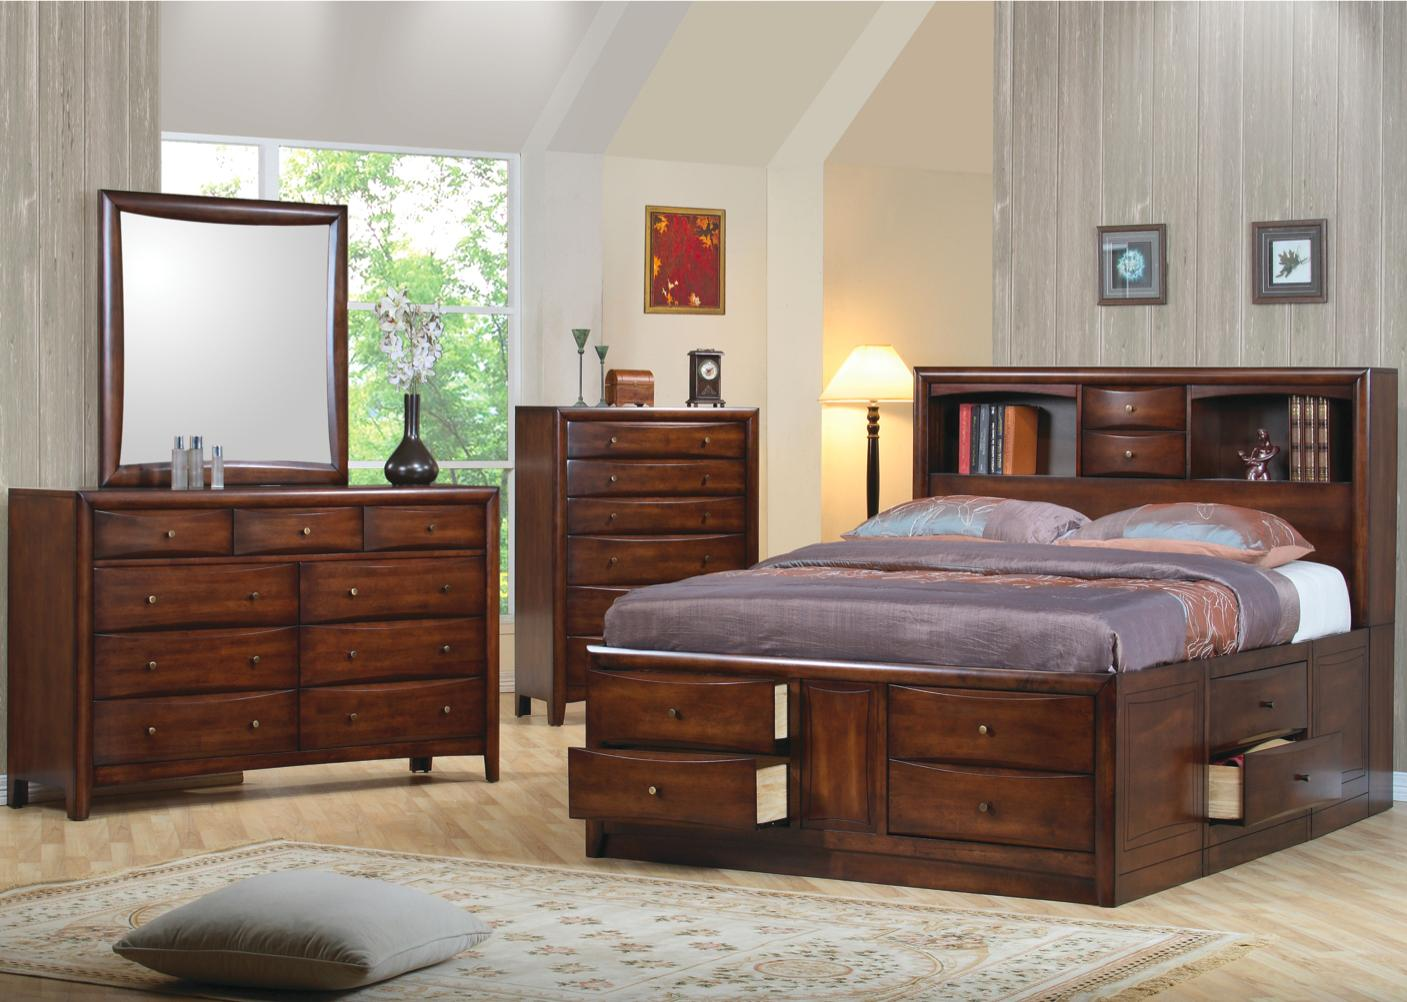 Image of: King Size Bookcase Headboard Picture